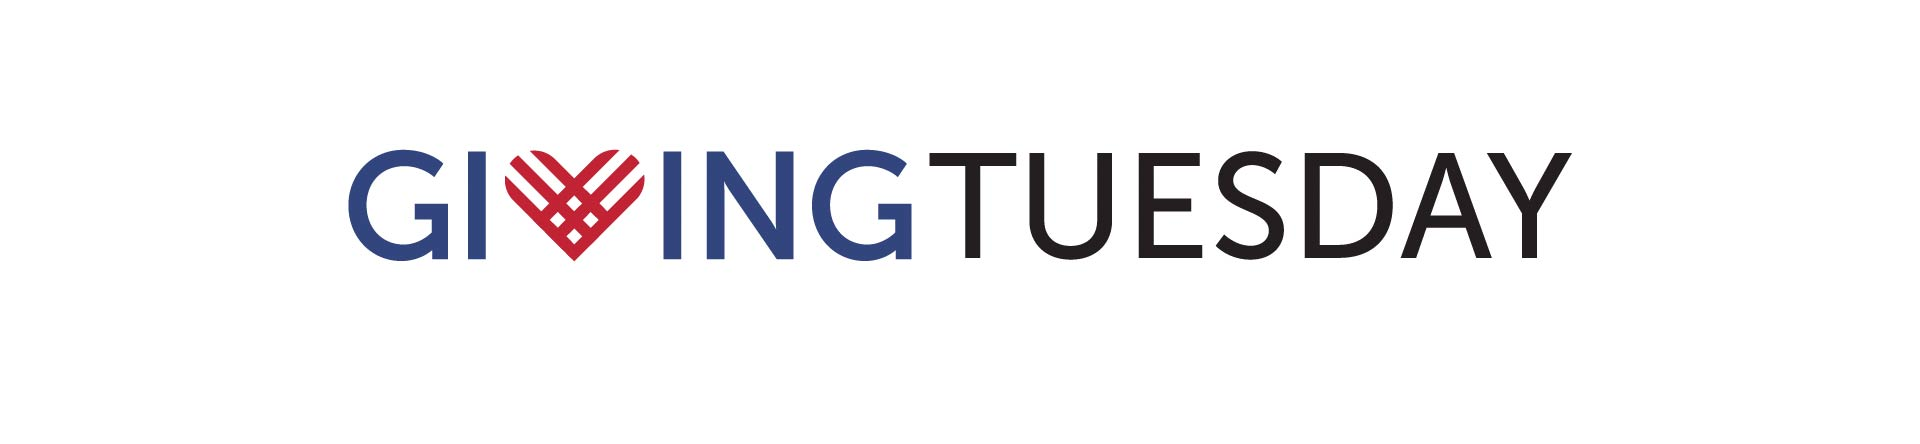 cloudEQ and Giving Tuesday